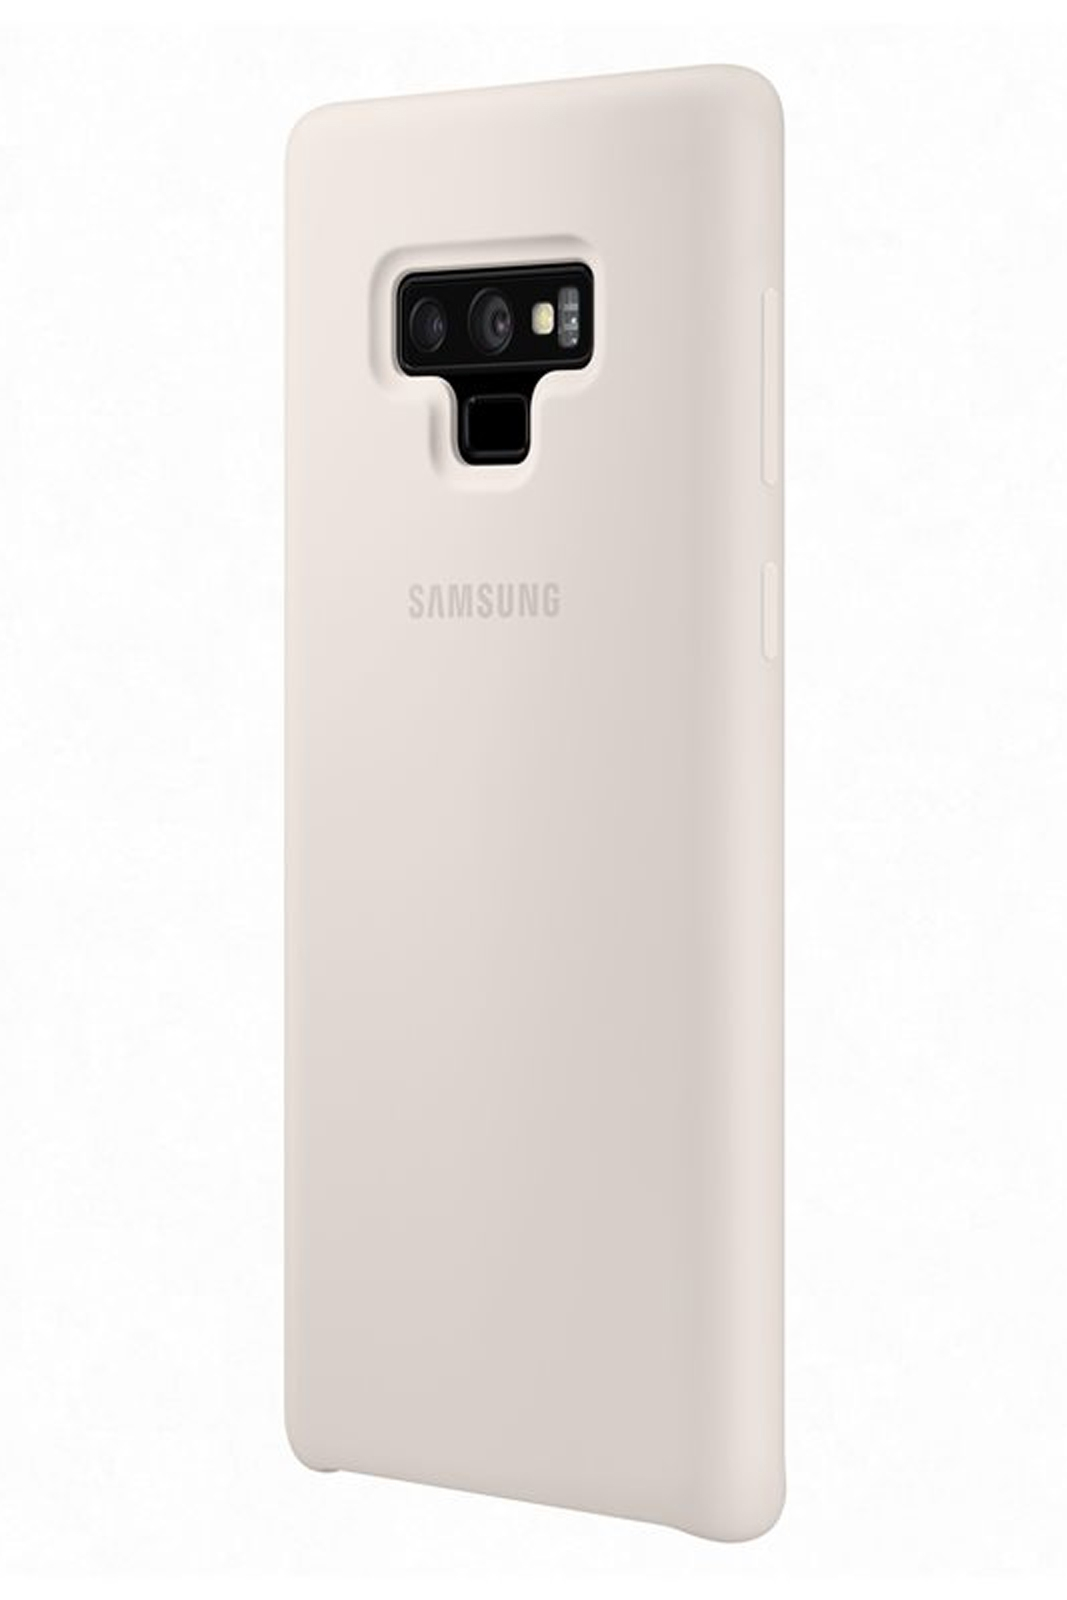 check out 08e52 c1189 Details about Official Samsung Galaxy Note 9 White Silicone Cover / Case -  EF-PN960TWEGWW